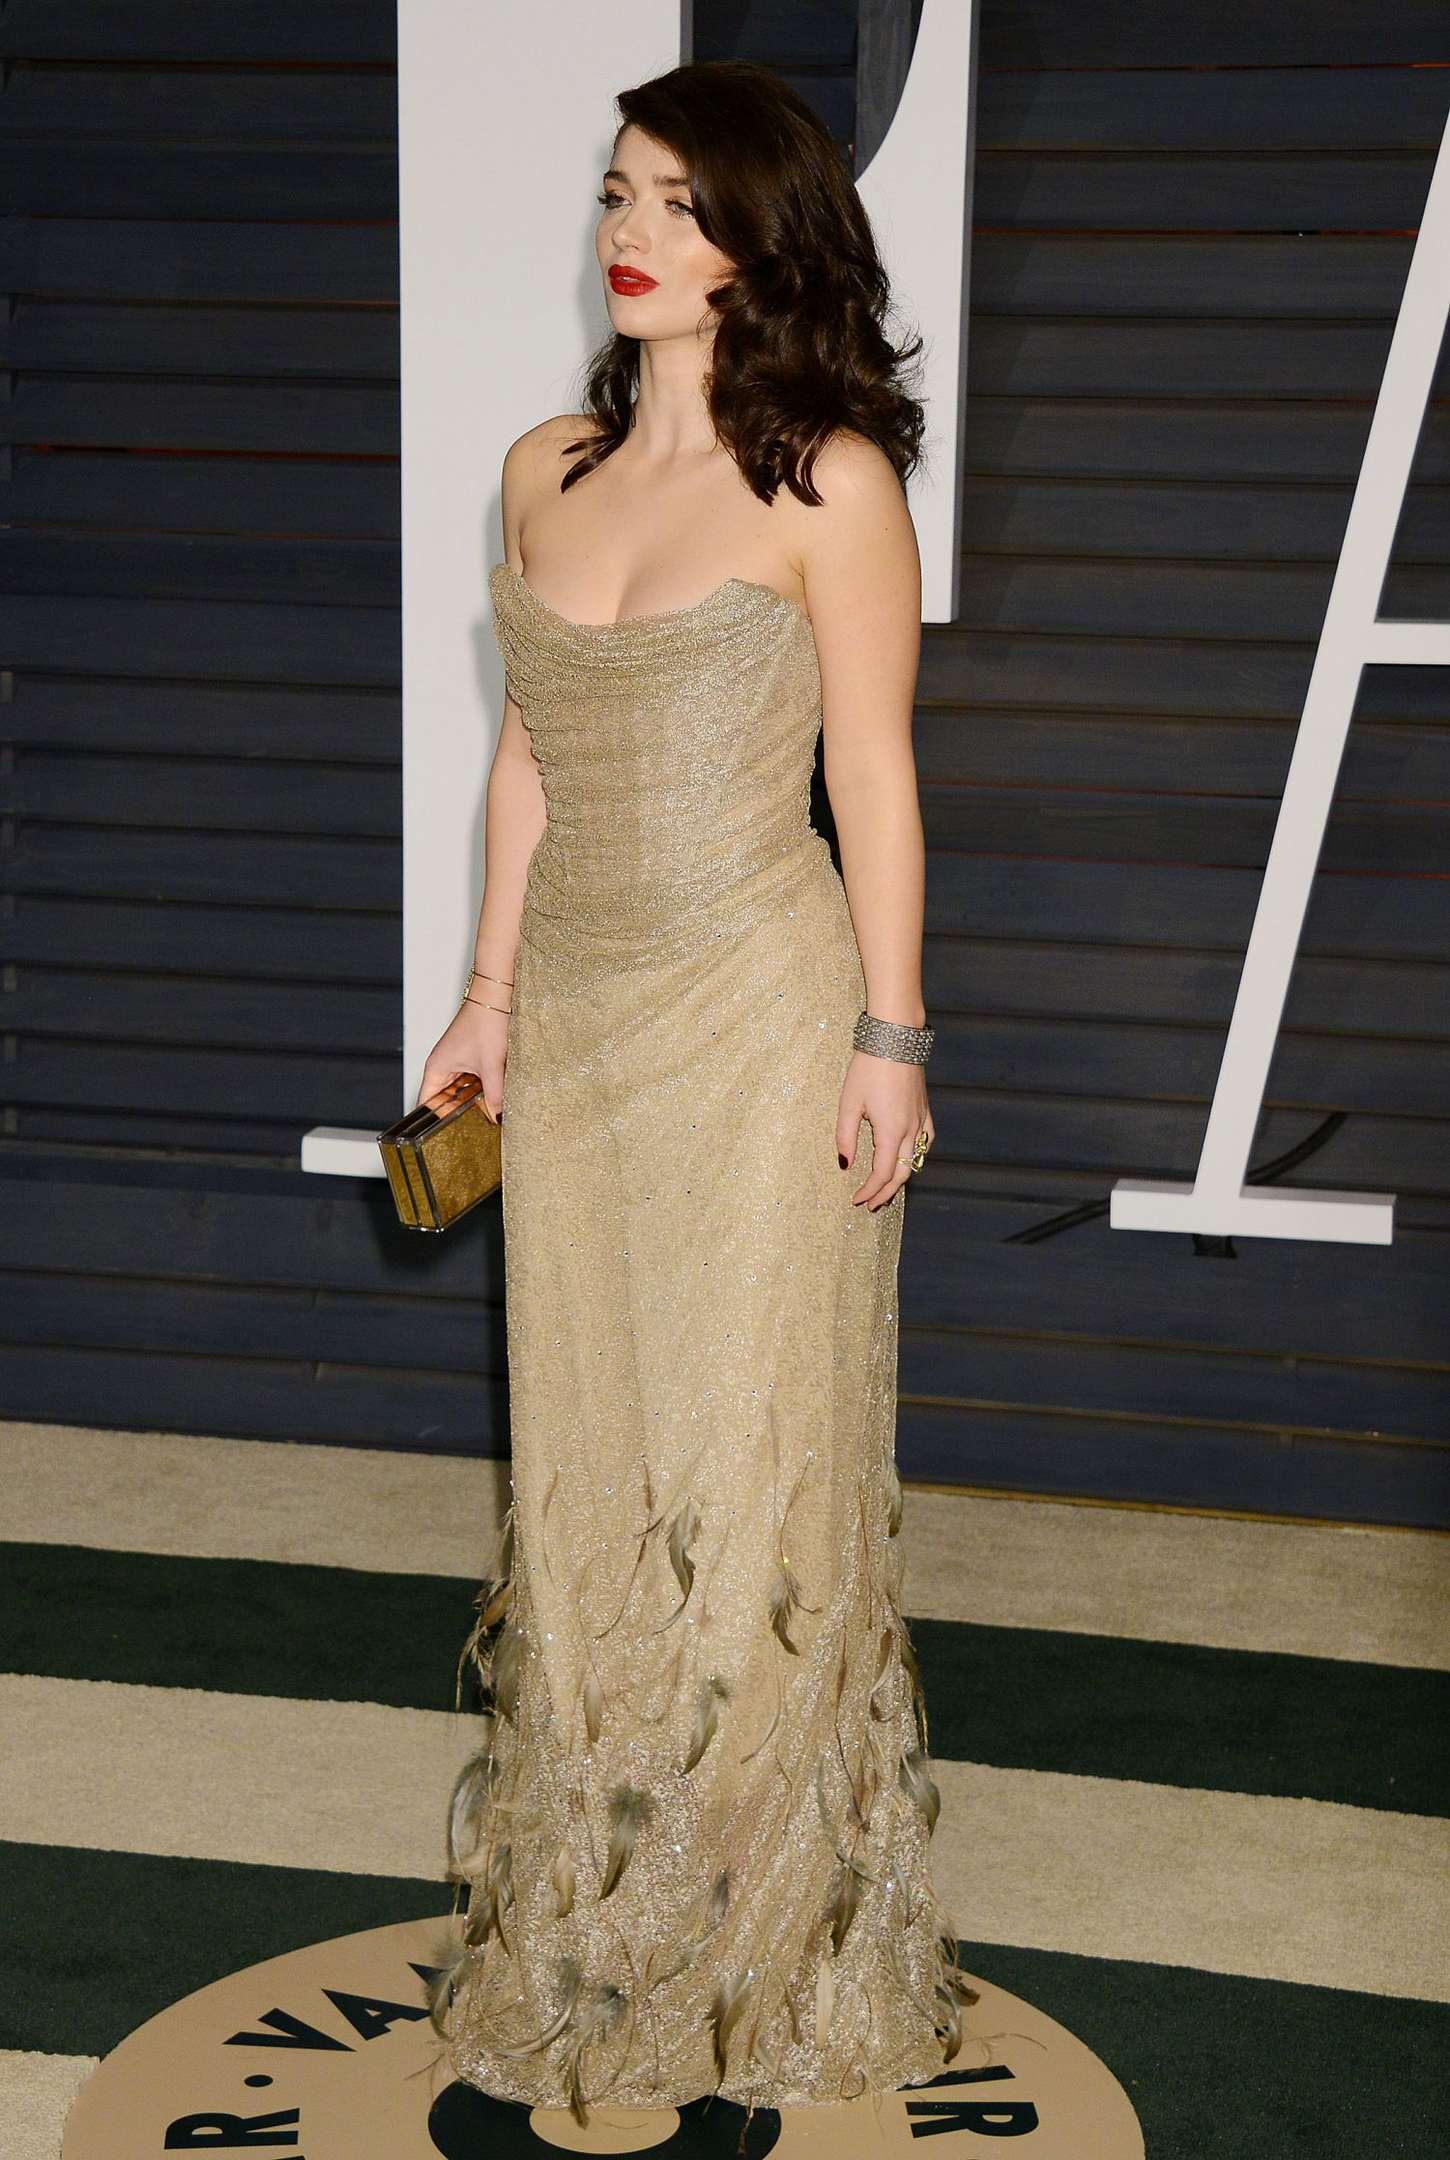 Eve Hewson Vanity Fair Oscar Party in Hollywood